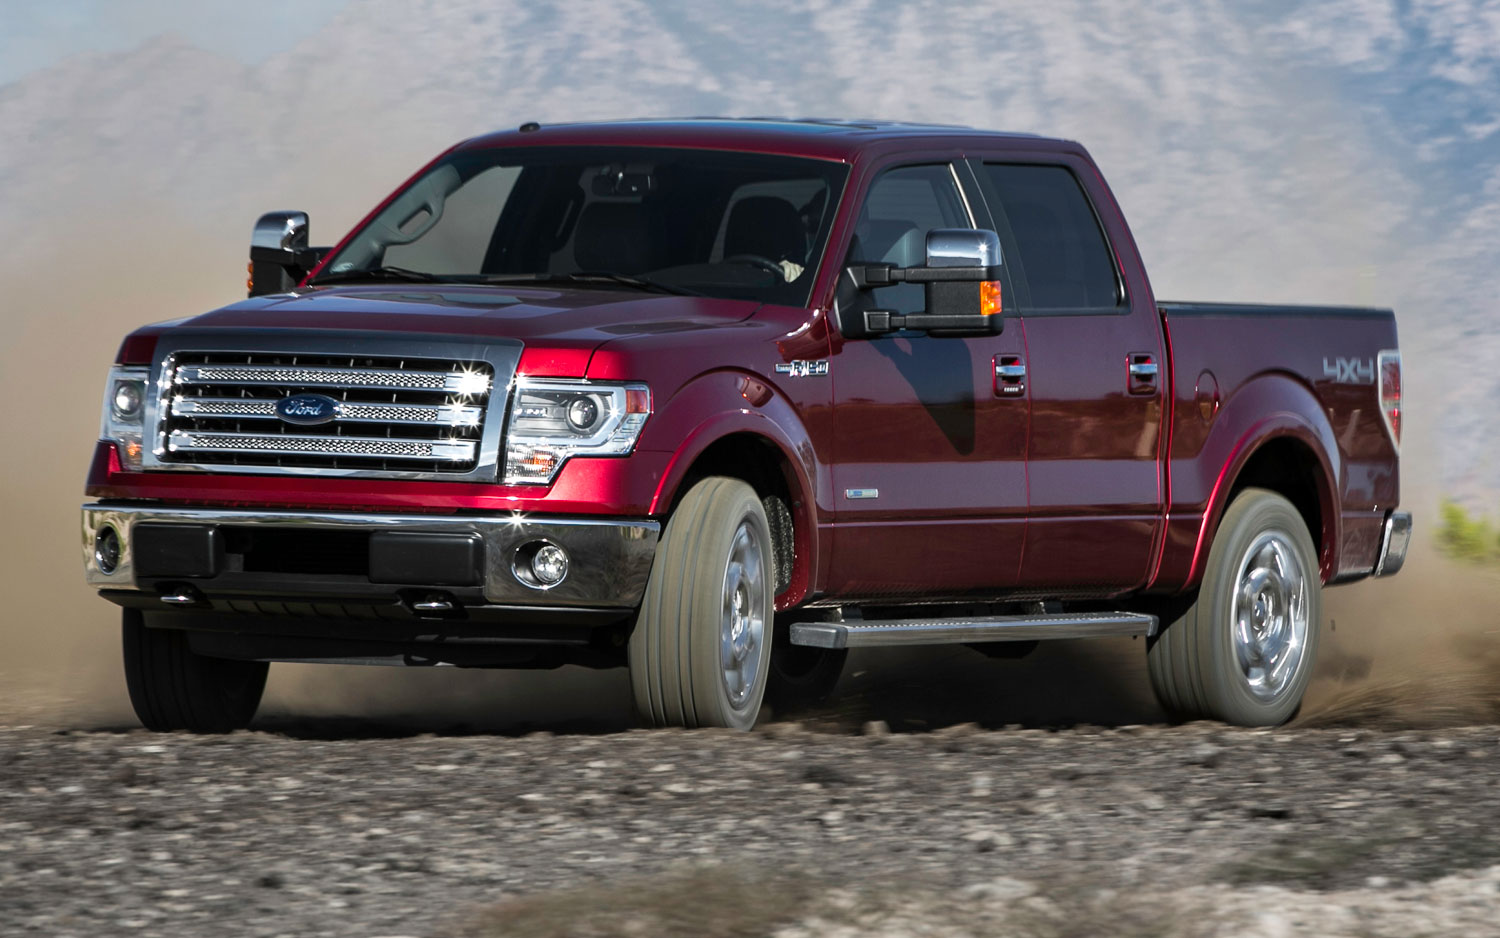 2013 ford f 150 user manual how to and user guide instructions u2022 rh taxibermuda co 2011 ford f 150 ecoboost service manual 2011 ford f 150 ecoboost service manual